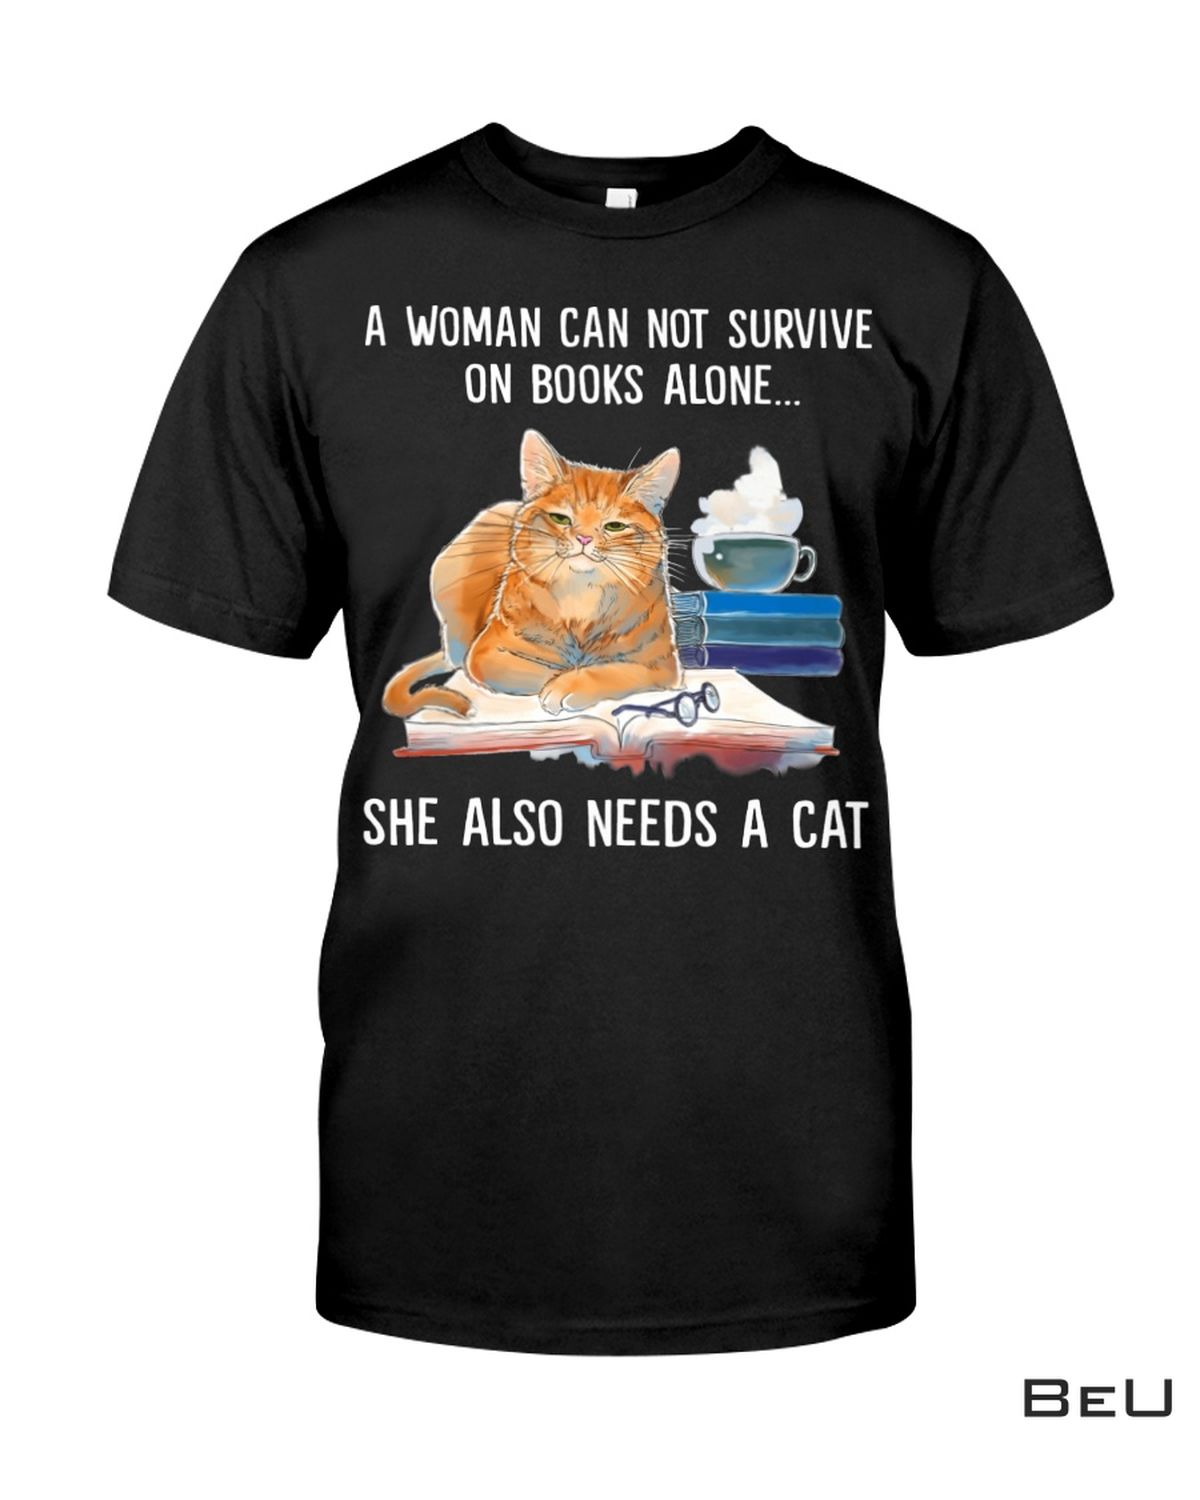 A Woman Can Not Survive On Books Alone She Also Needs A Cat Shirt, hoodie, tank top